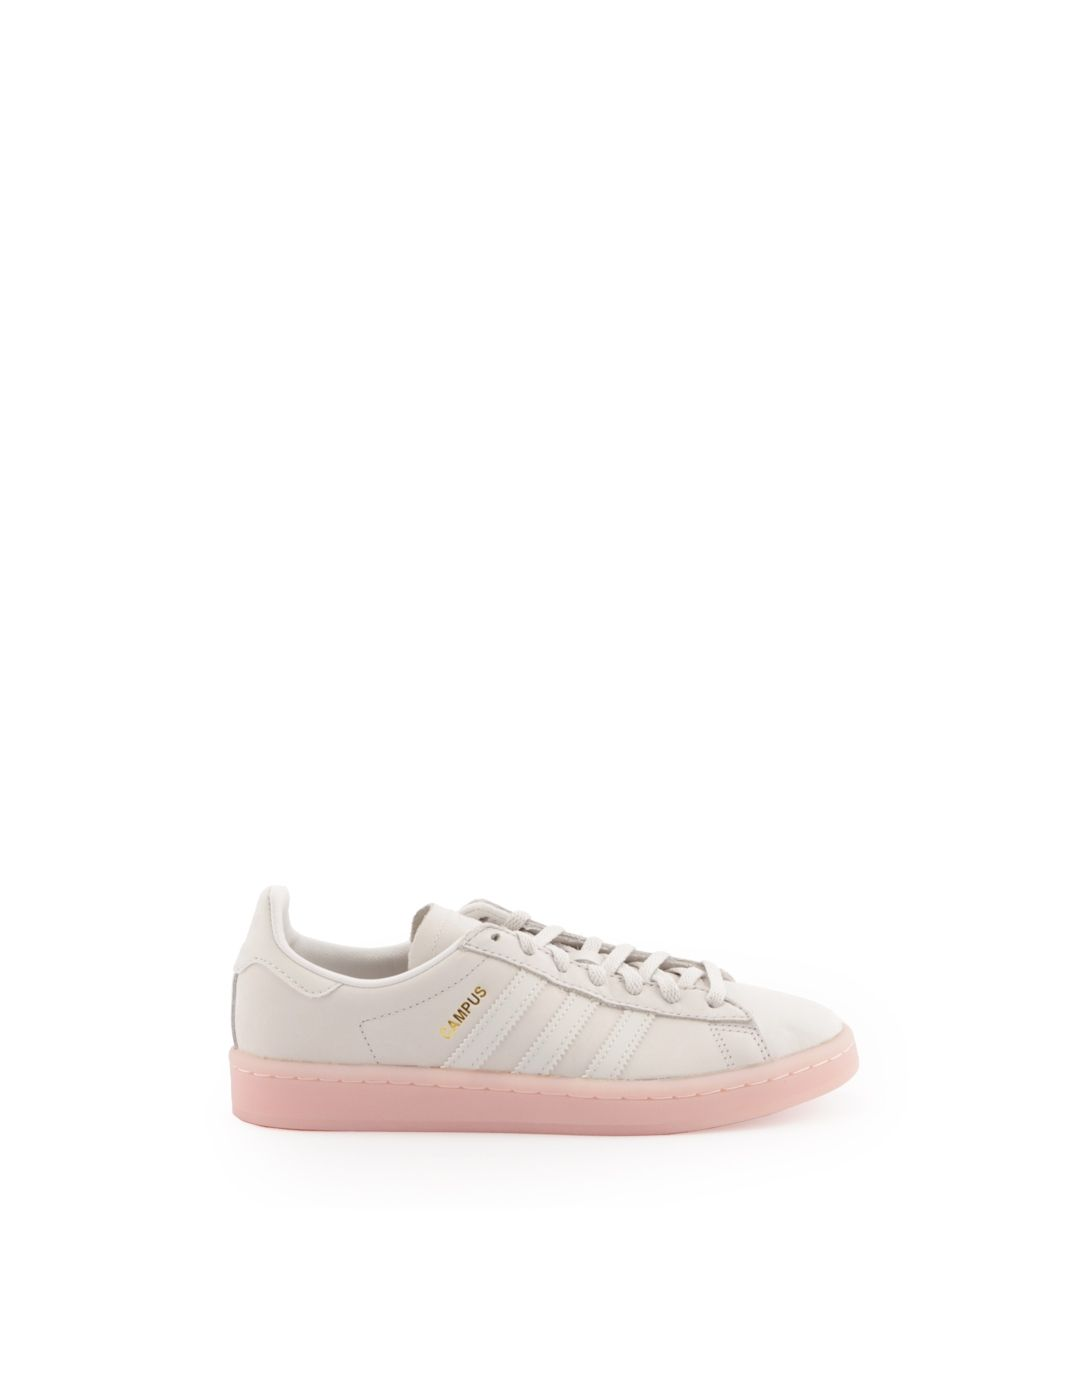 ADIDAS WOMEN'S BY9839 WHITE LEATHER SNEAKERS